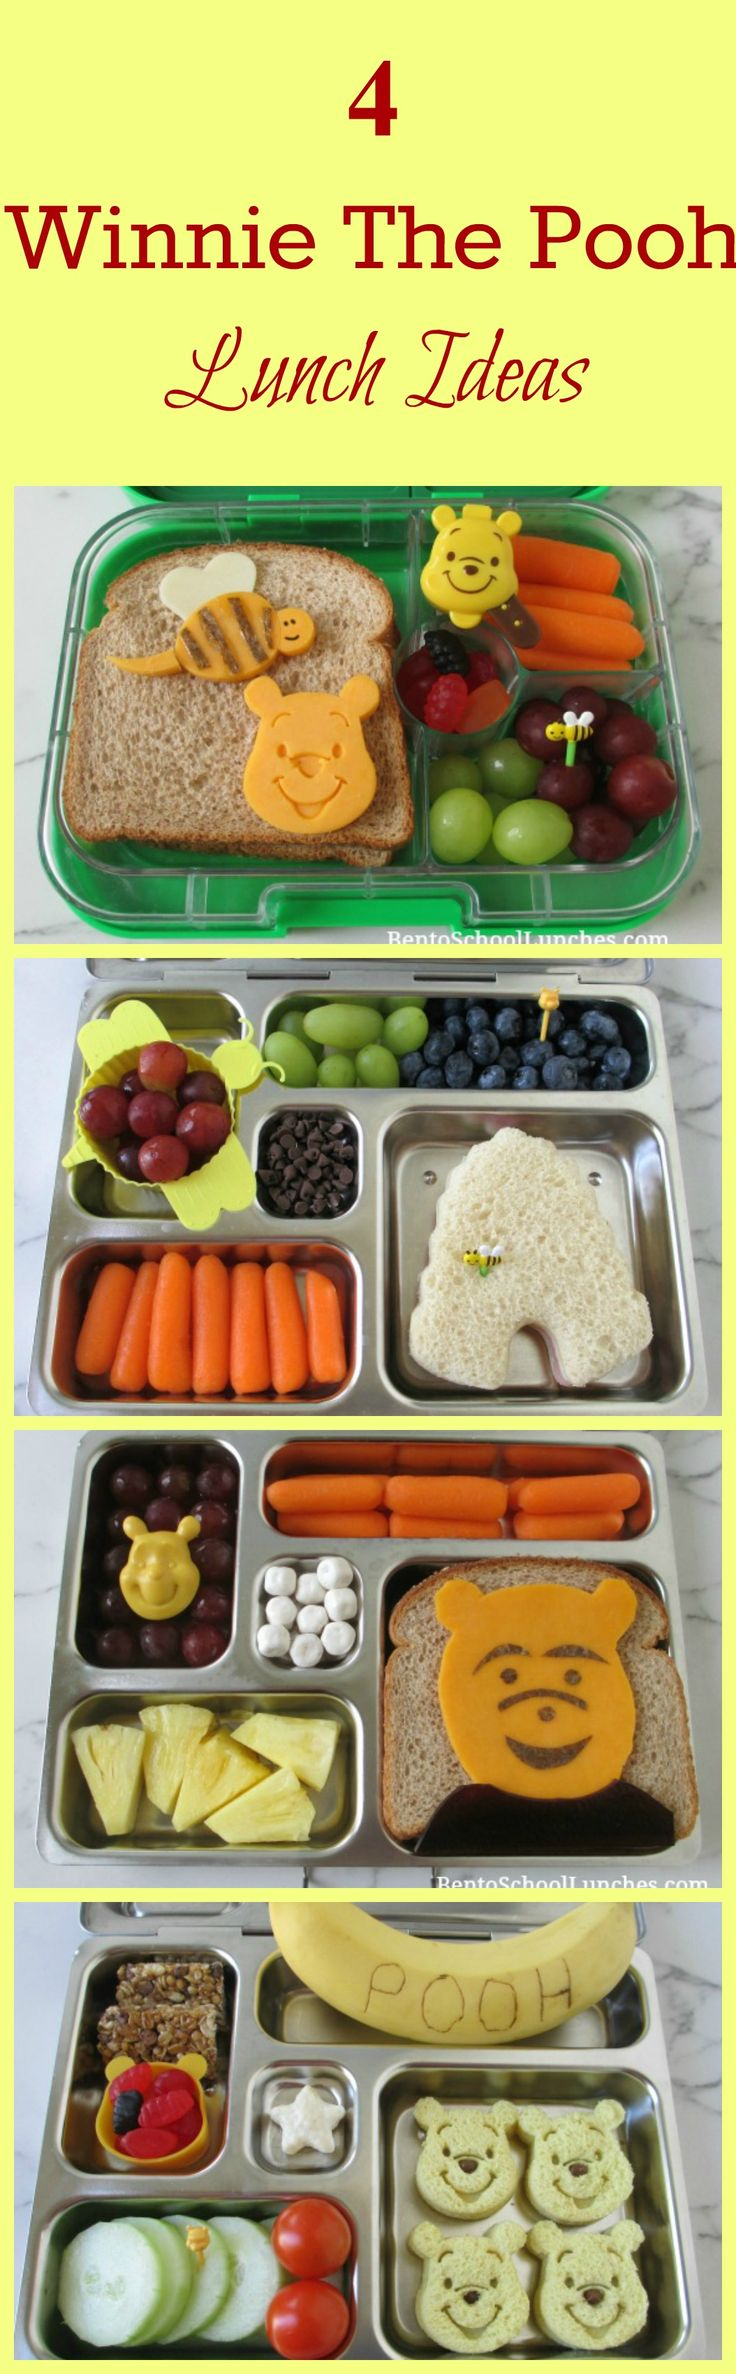 4 Winnie The Pooh Lunch Ideas. Fun lunches for kids.